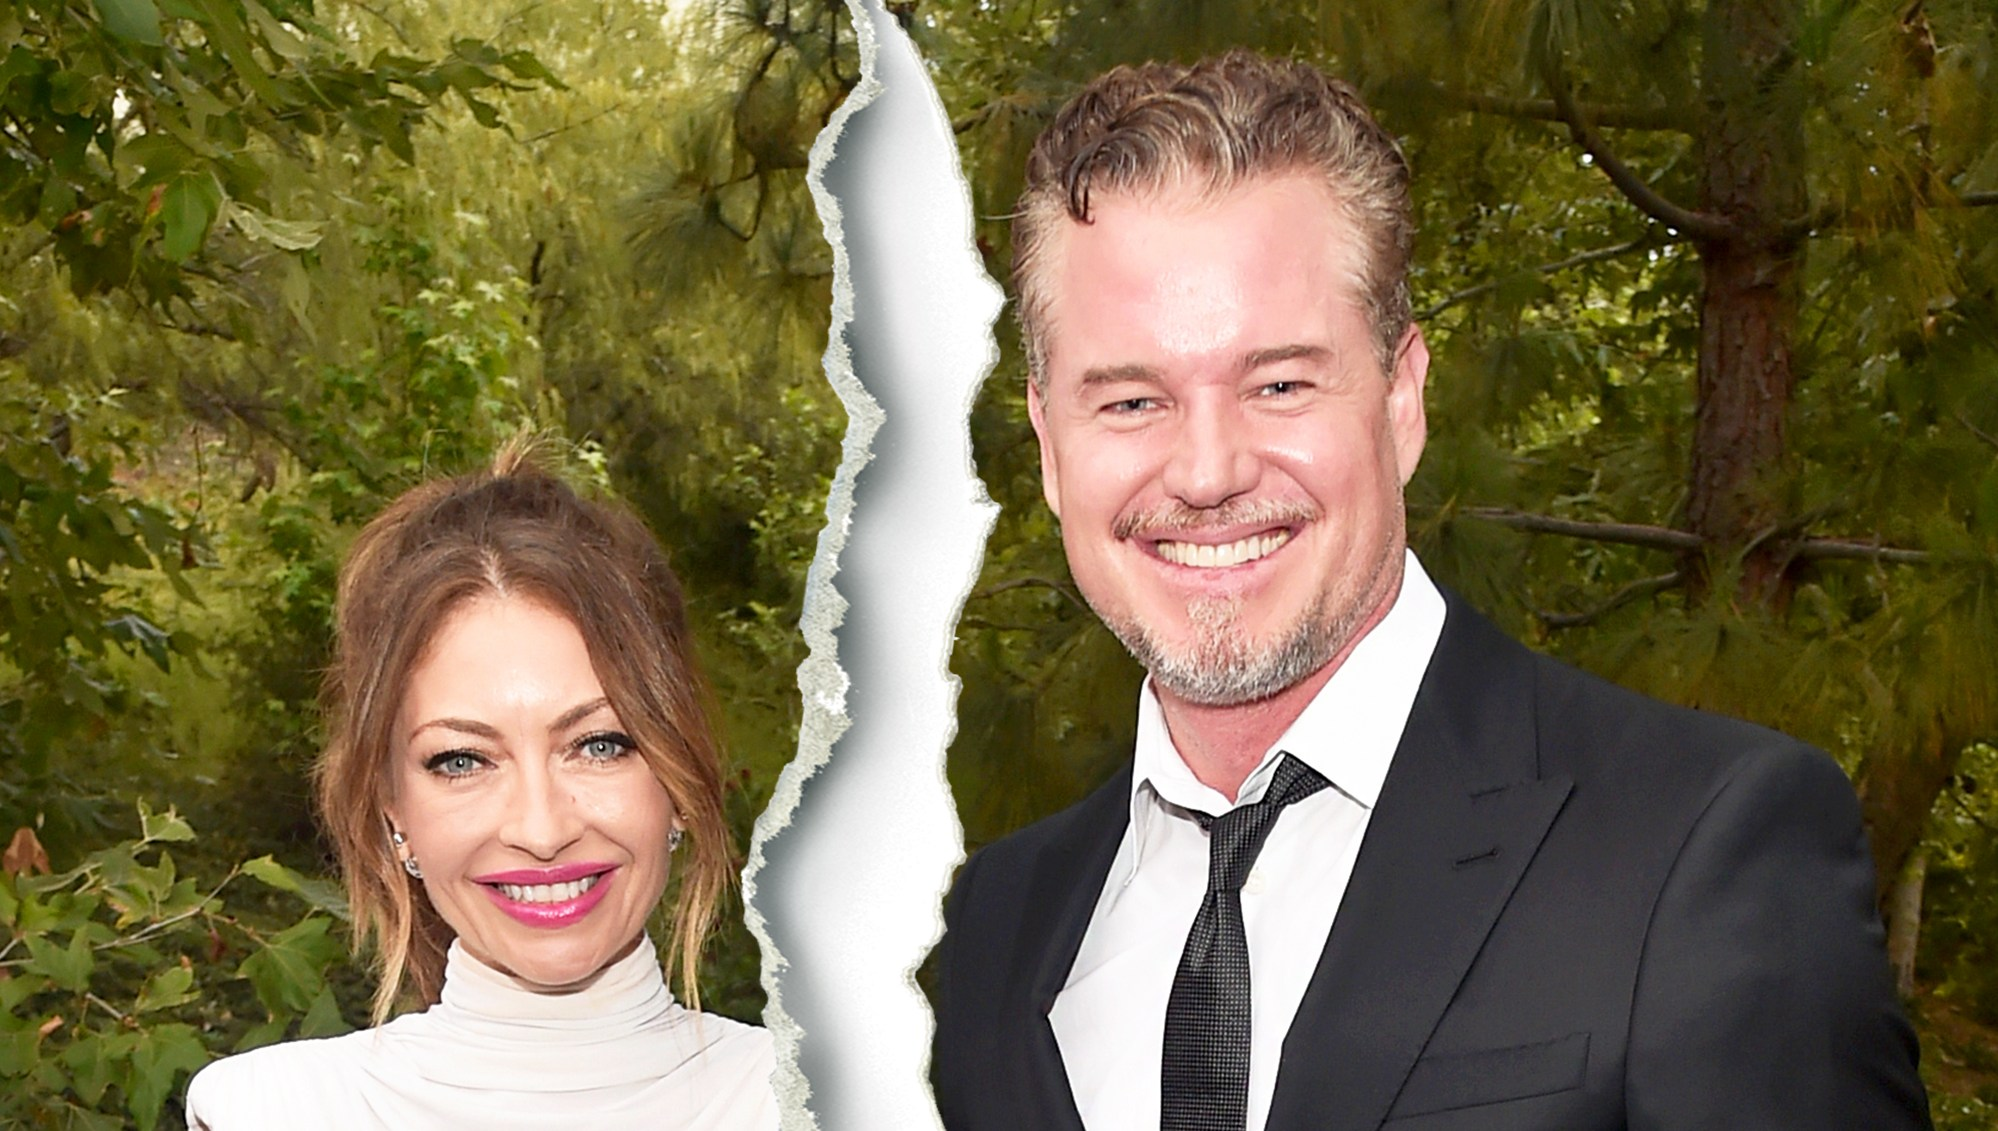 Rebecca Gayheart and Eric Dane attend the 16th Annual Chrysalis Butterfly Ball on June 3, 2017 in Los Angeles, California.